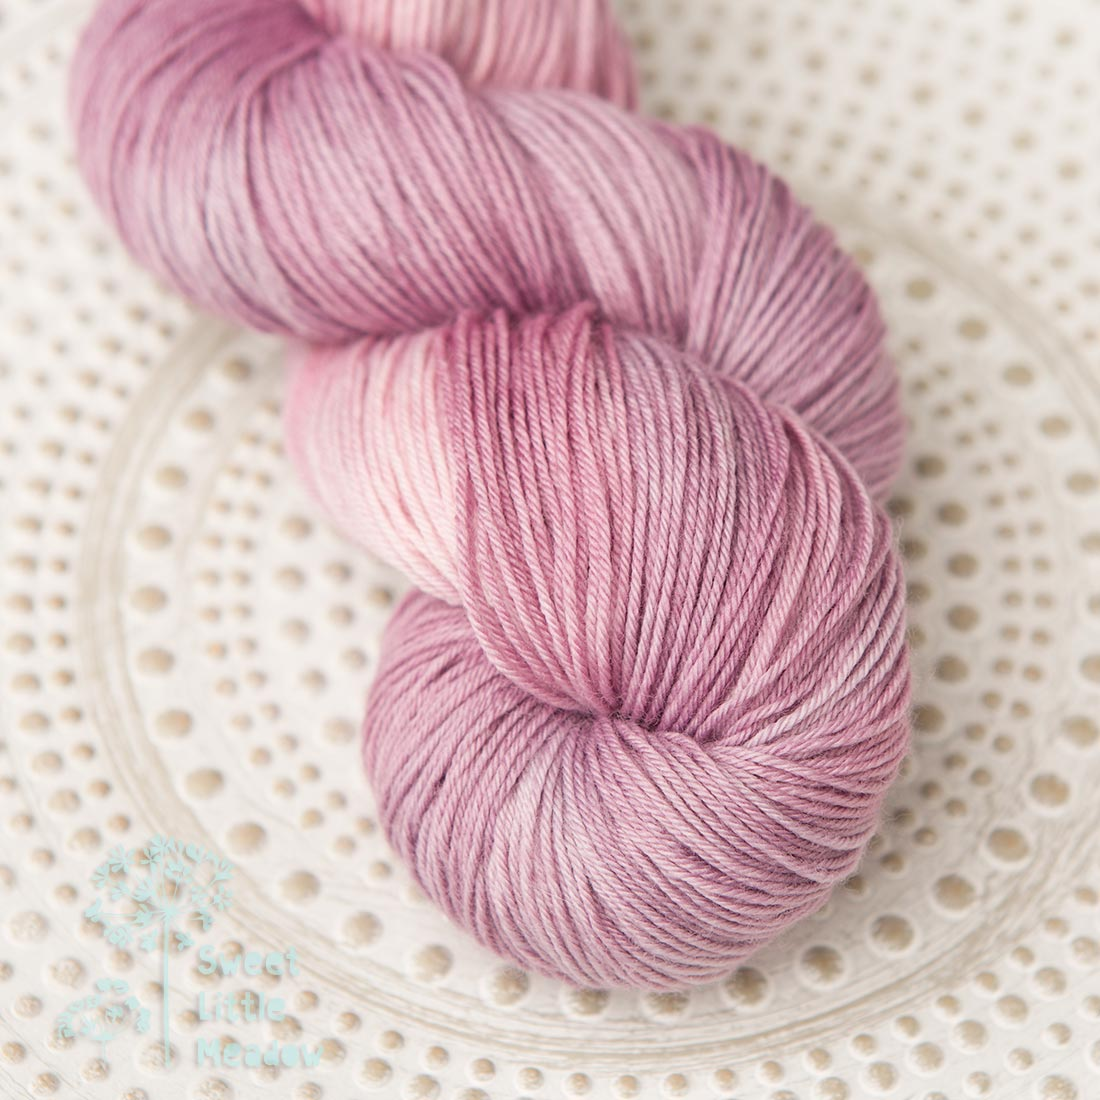 Lovely pink rose skein 4ply sock wool merino superwash handdyed indie dyer